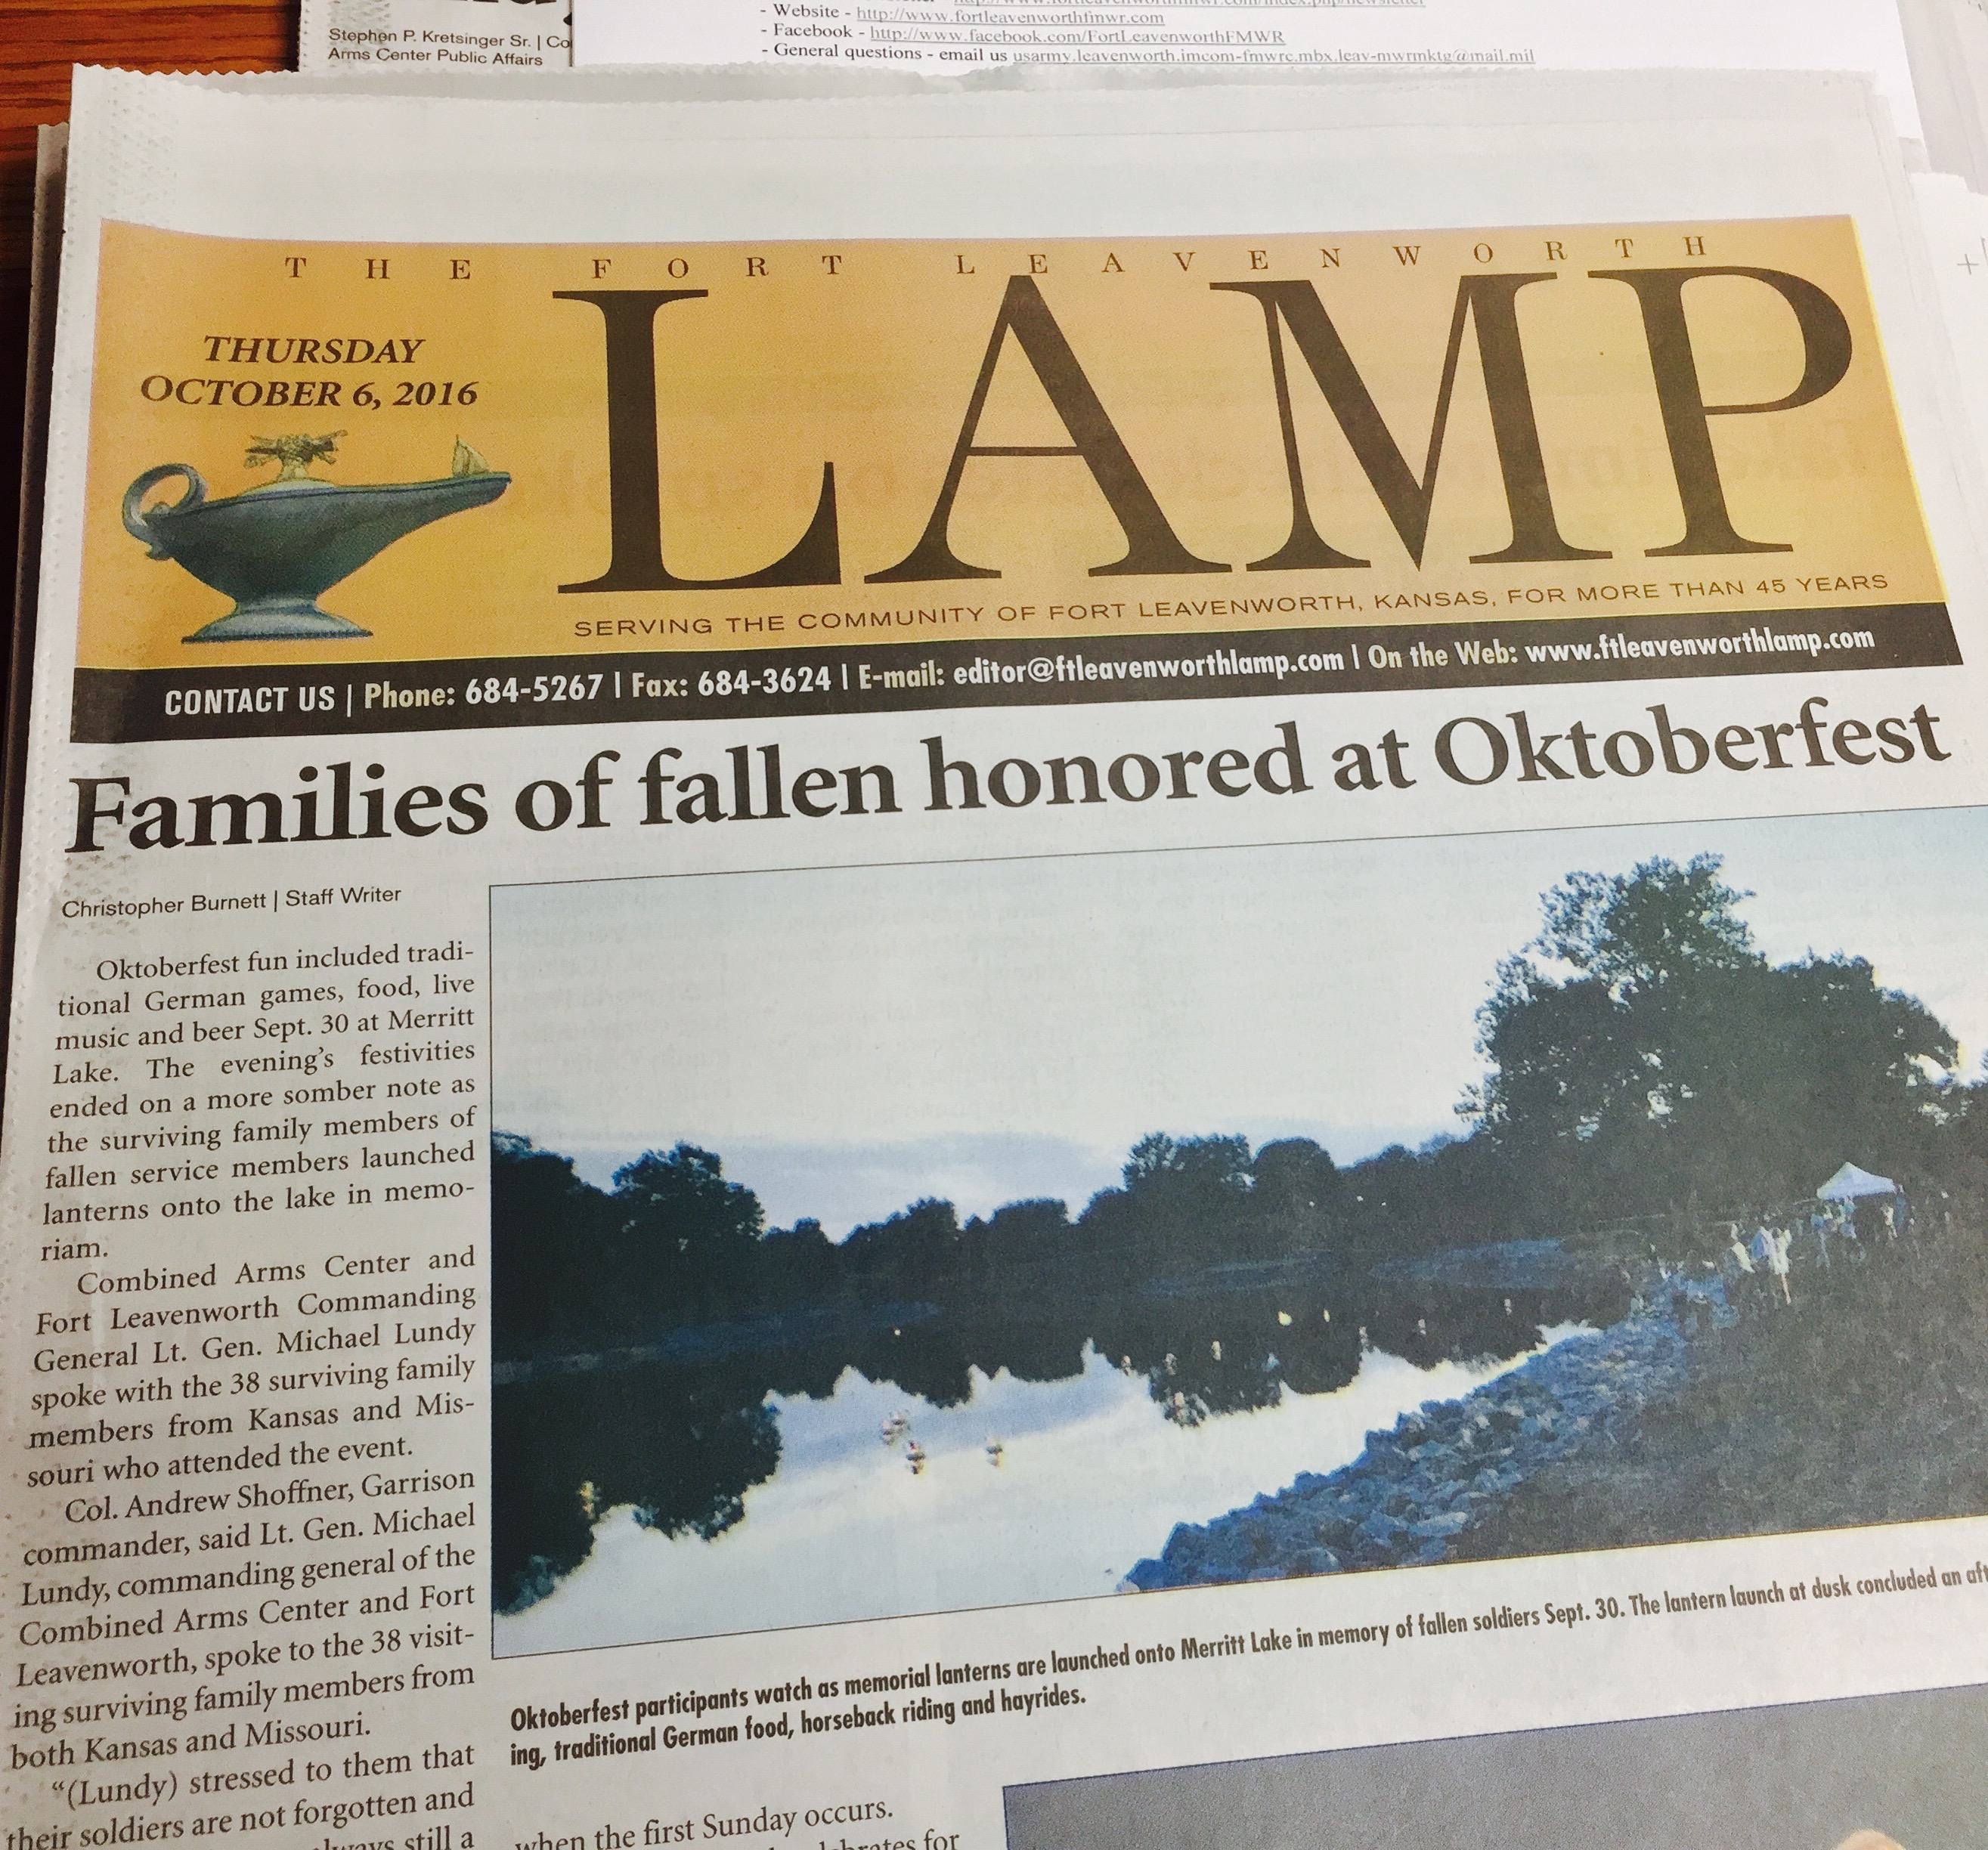 October 6, 2016 issue of the Lamp